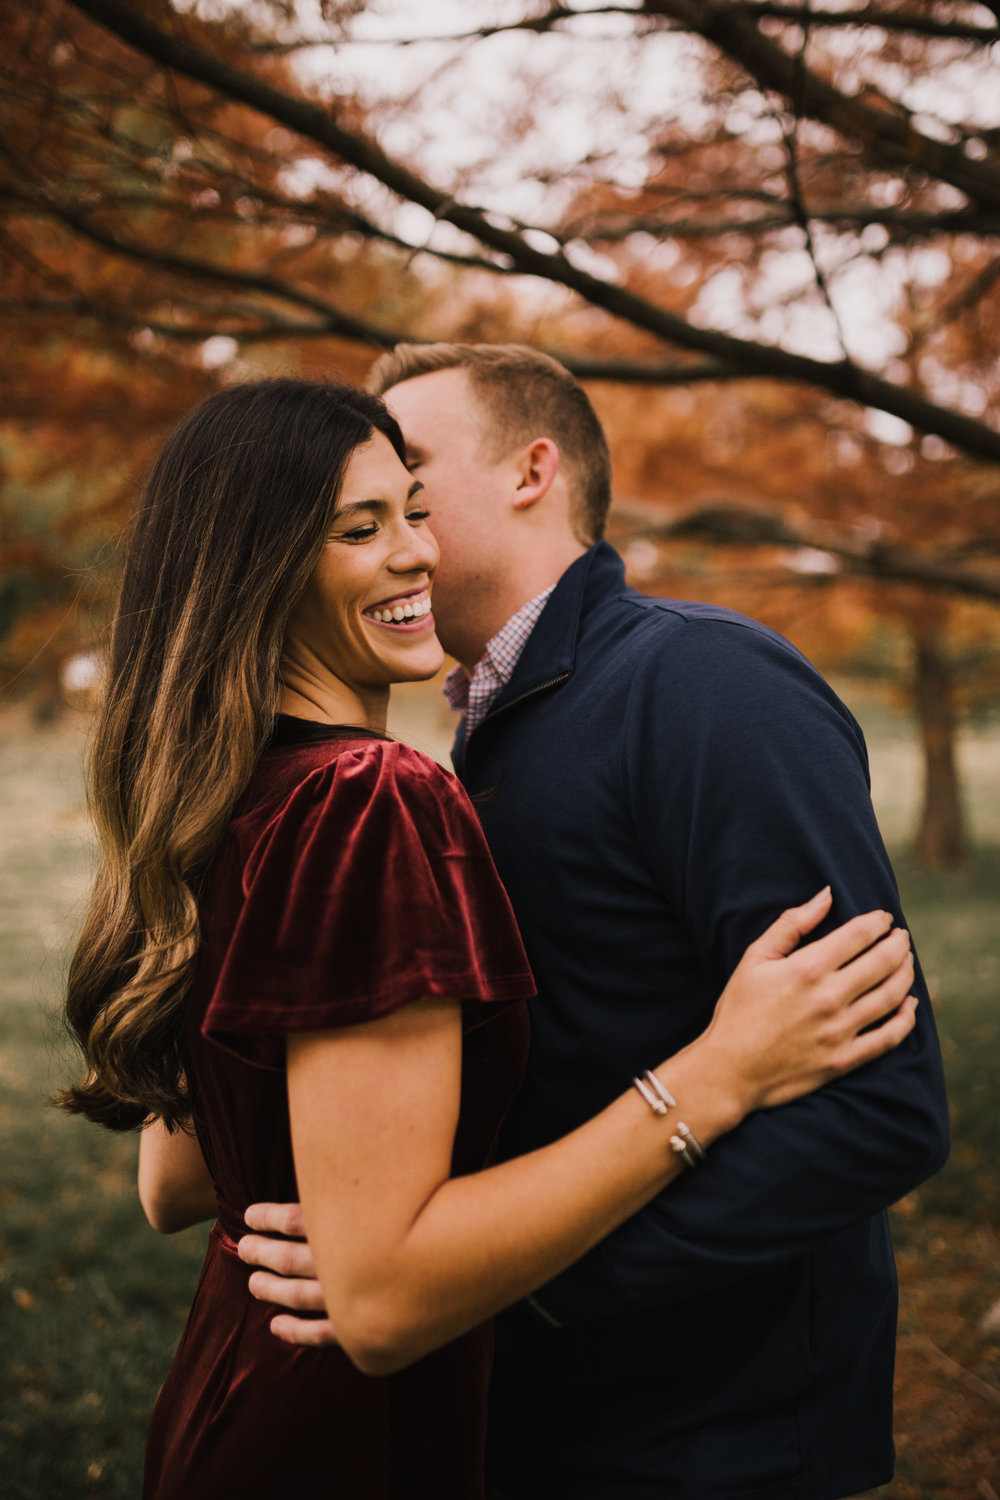 alyssa barletter photography loose park fall engagement photos autumn wedding photography-9.jpg